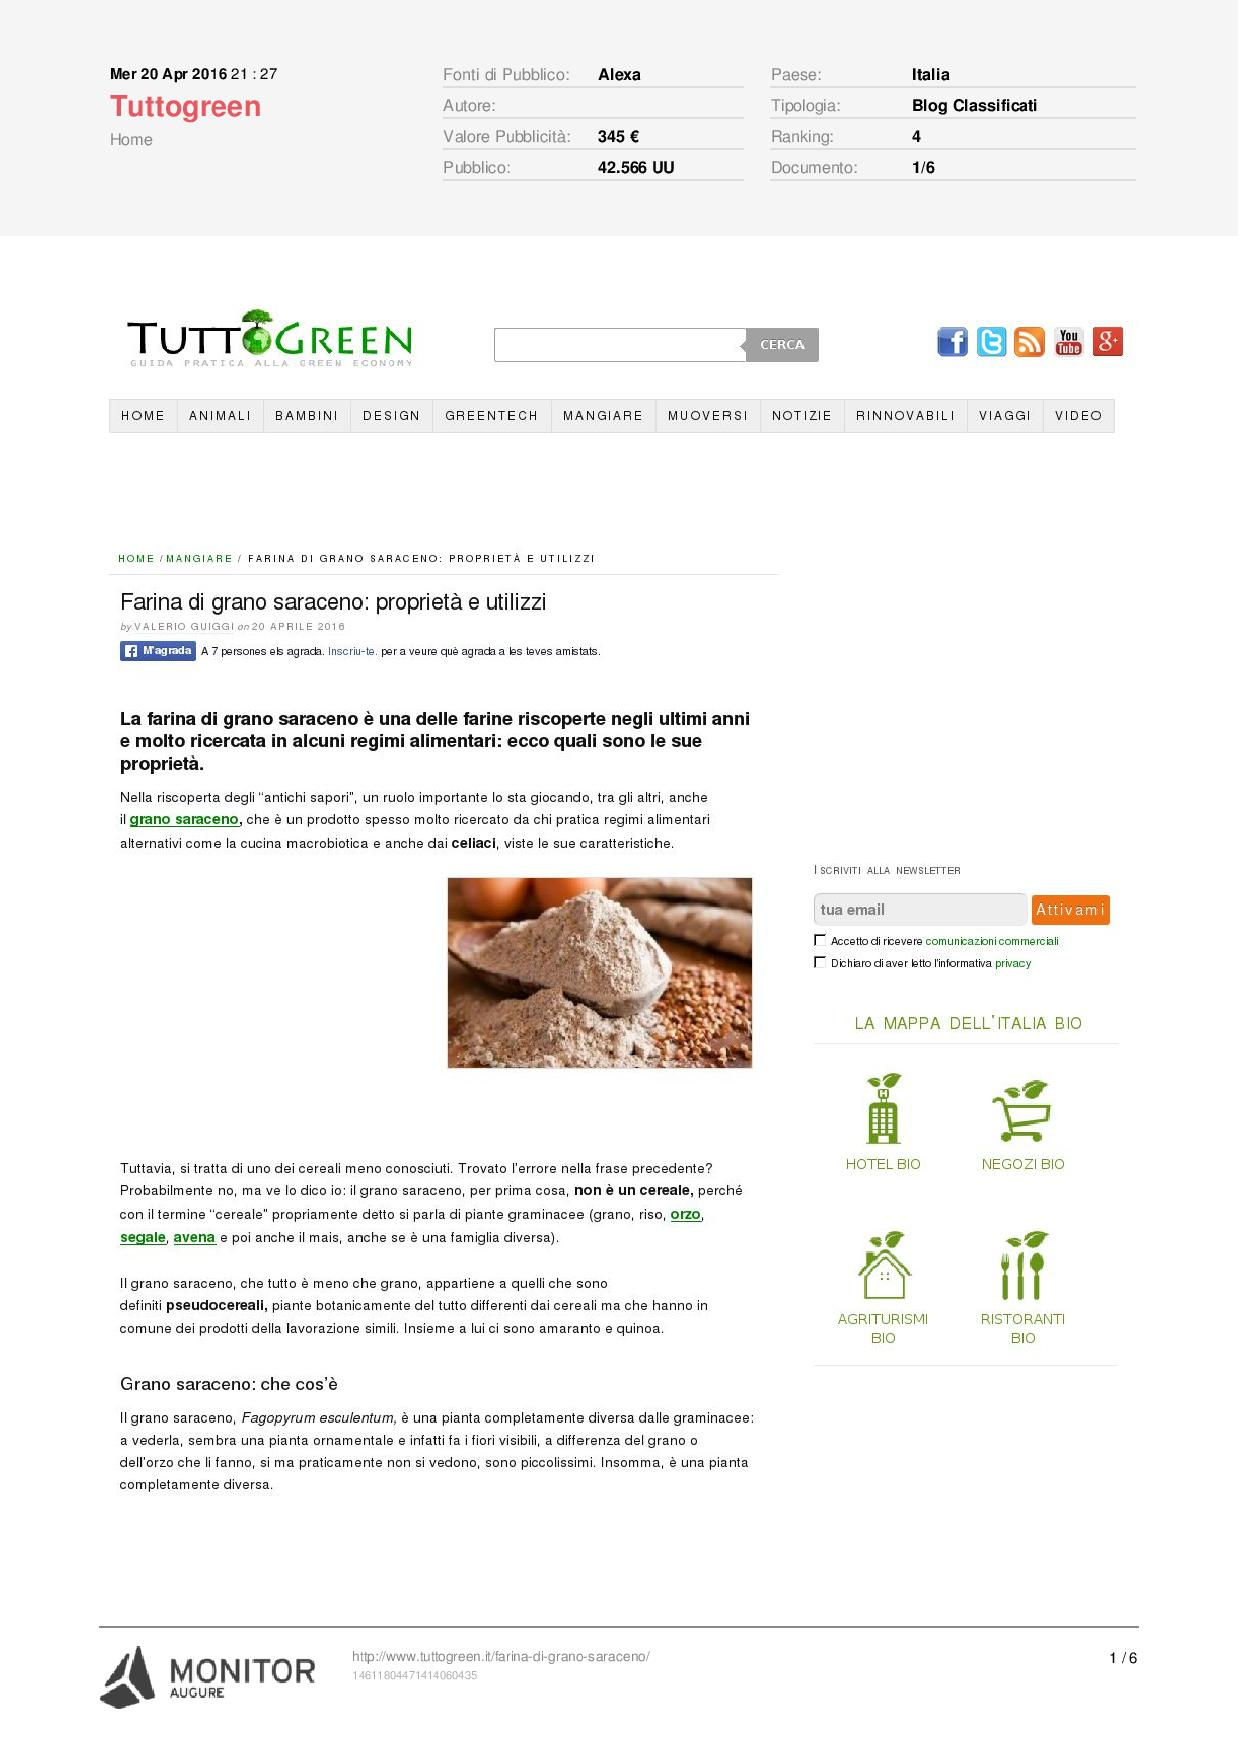 20.04.16_tuttogreen.it-page-001